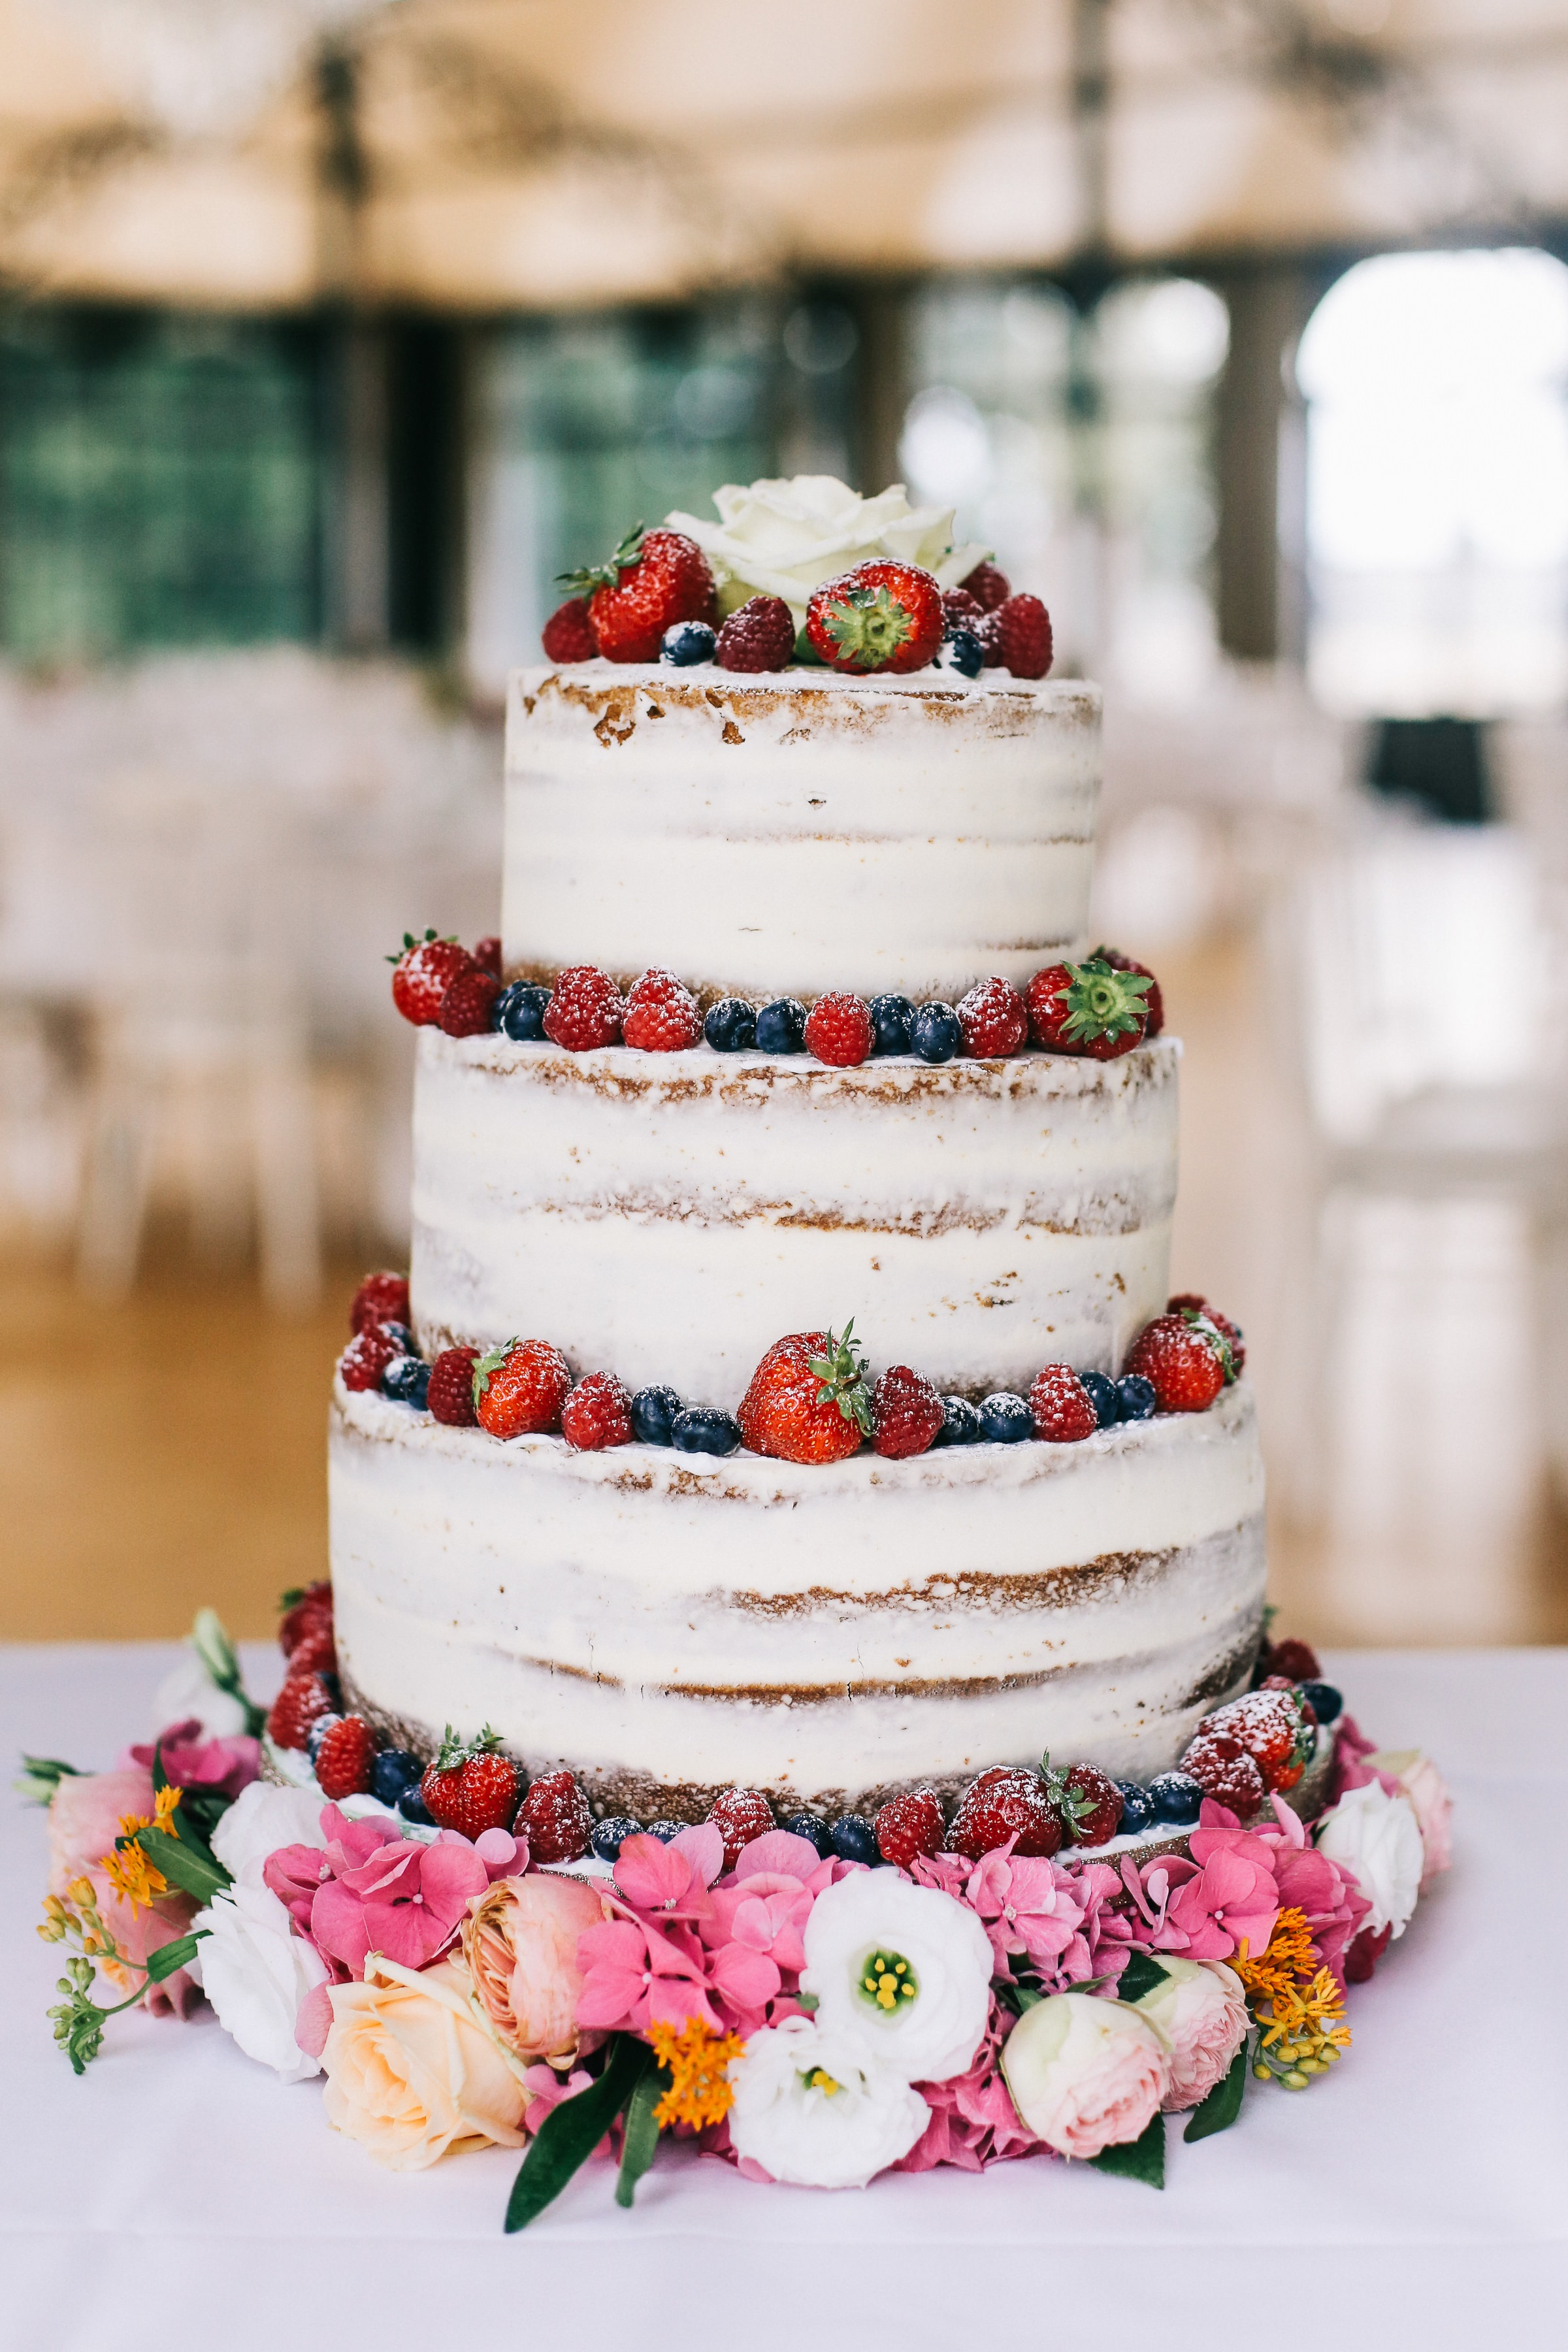 white wedding cake with berries- photo by Amandine Ropars, france